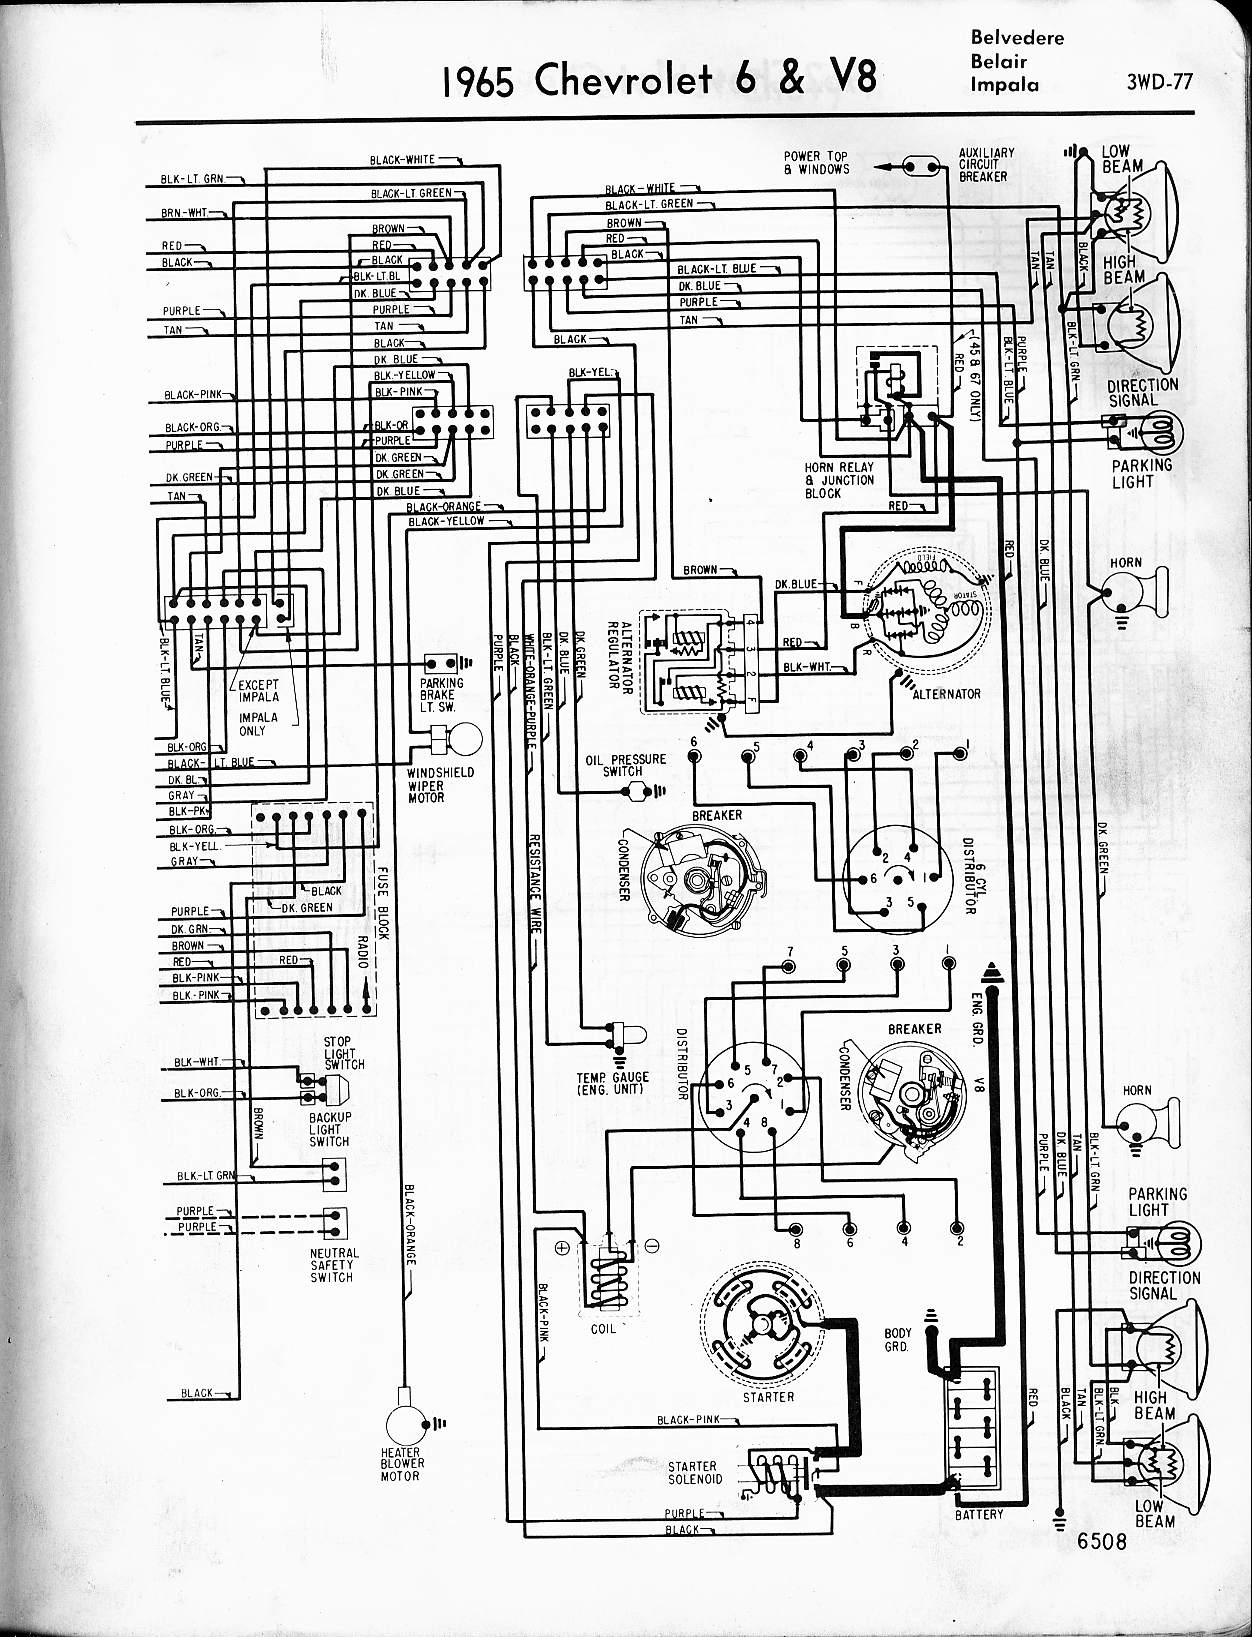 chevy diagrams rh wiring wizard com 1970 chevelle ss wiring diagram 1970 chevelle wiring harness diagram